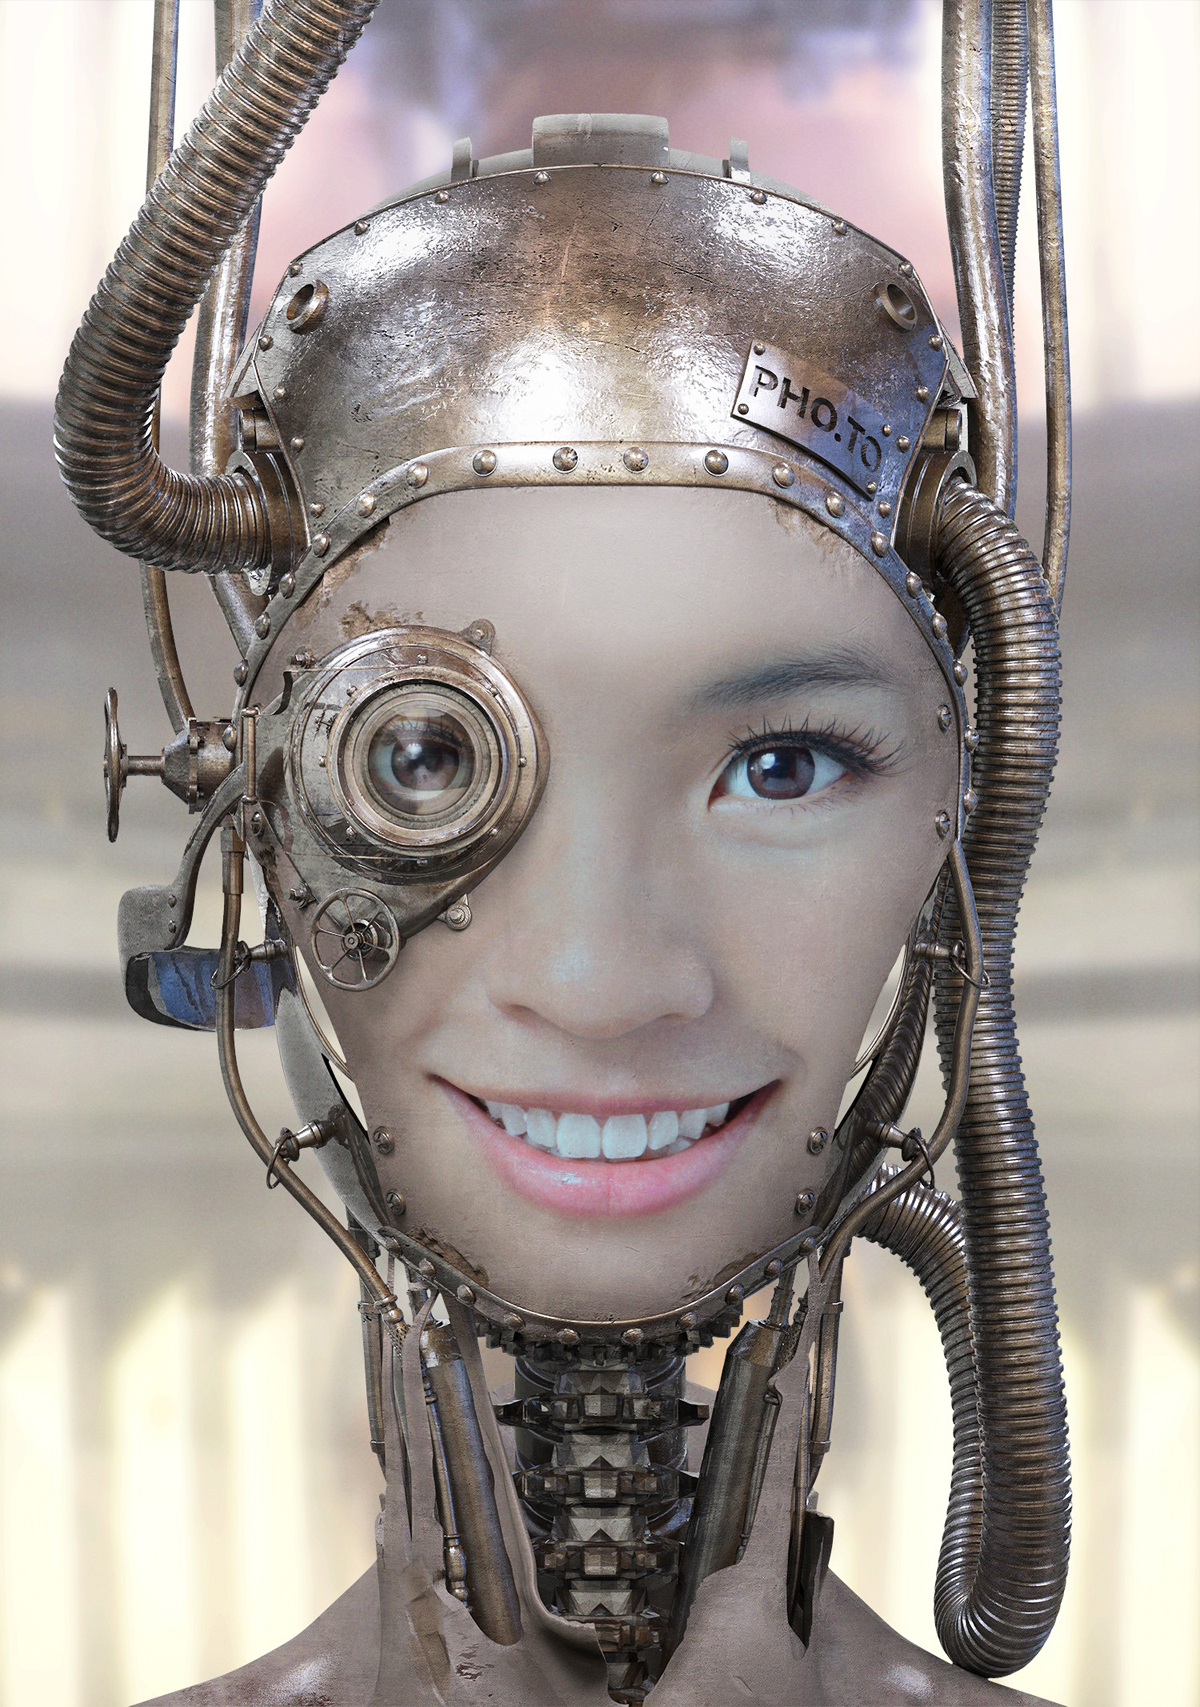 Turn yourself into a robot with online steampunk face effect